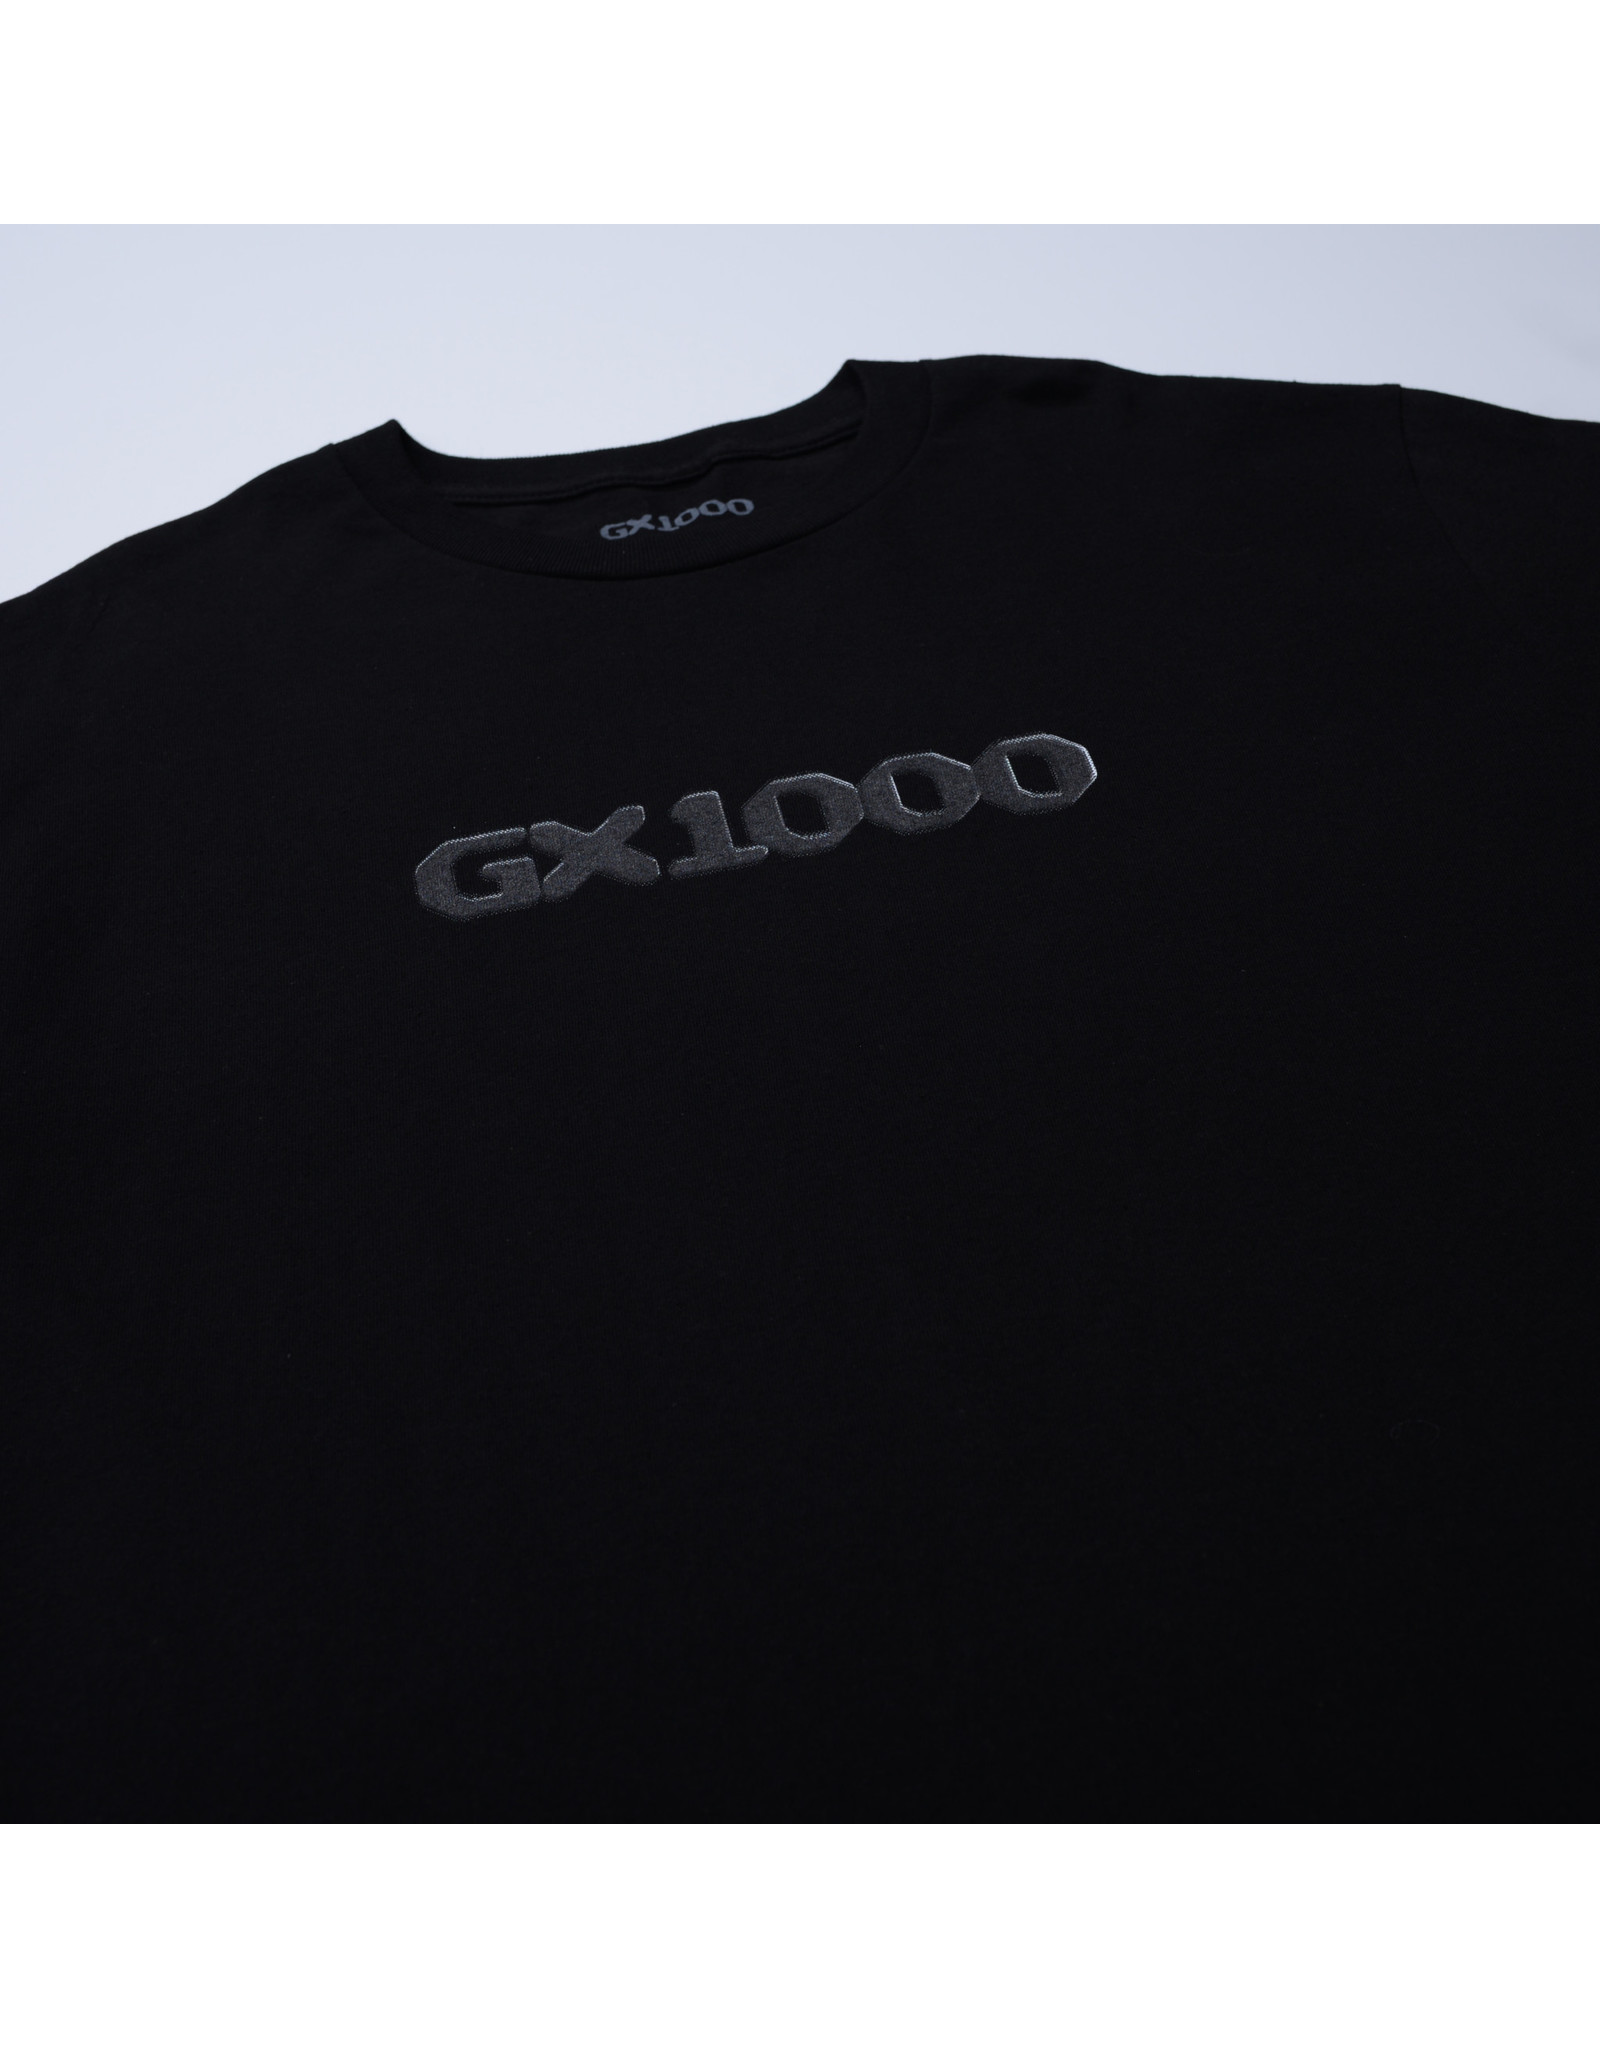 GX1000 Dithered Logo - Black